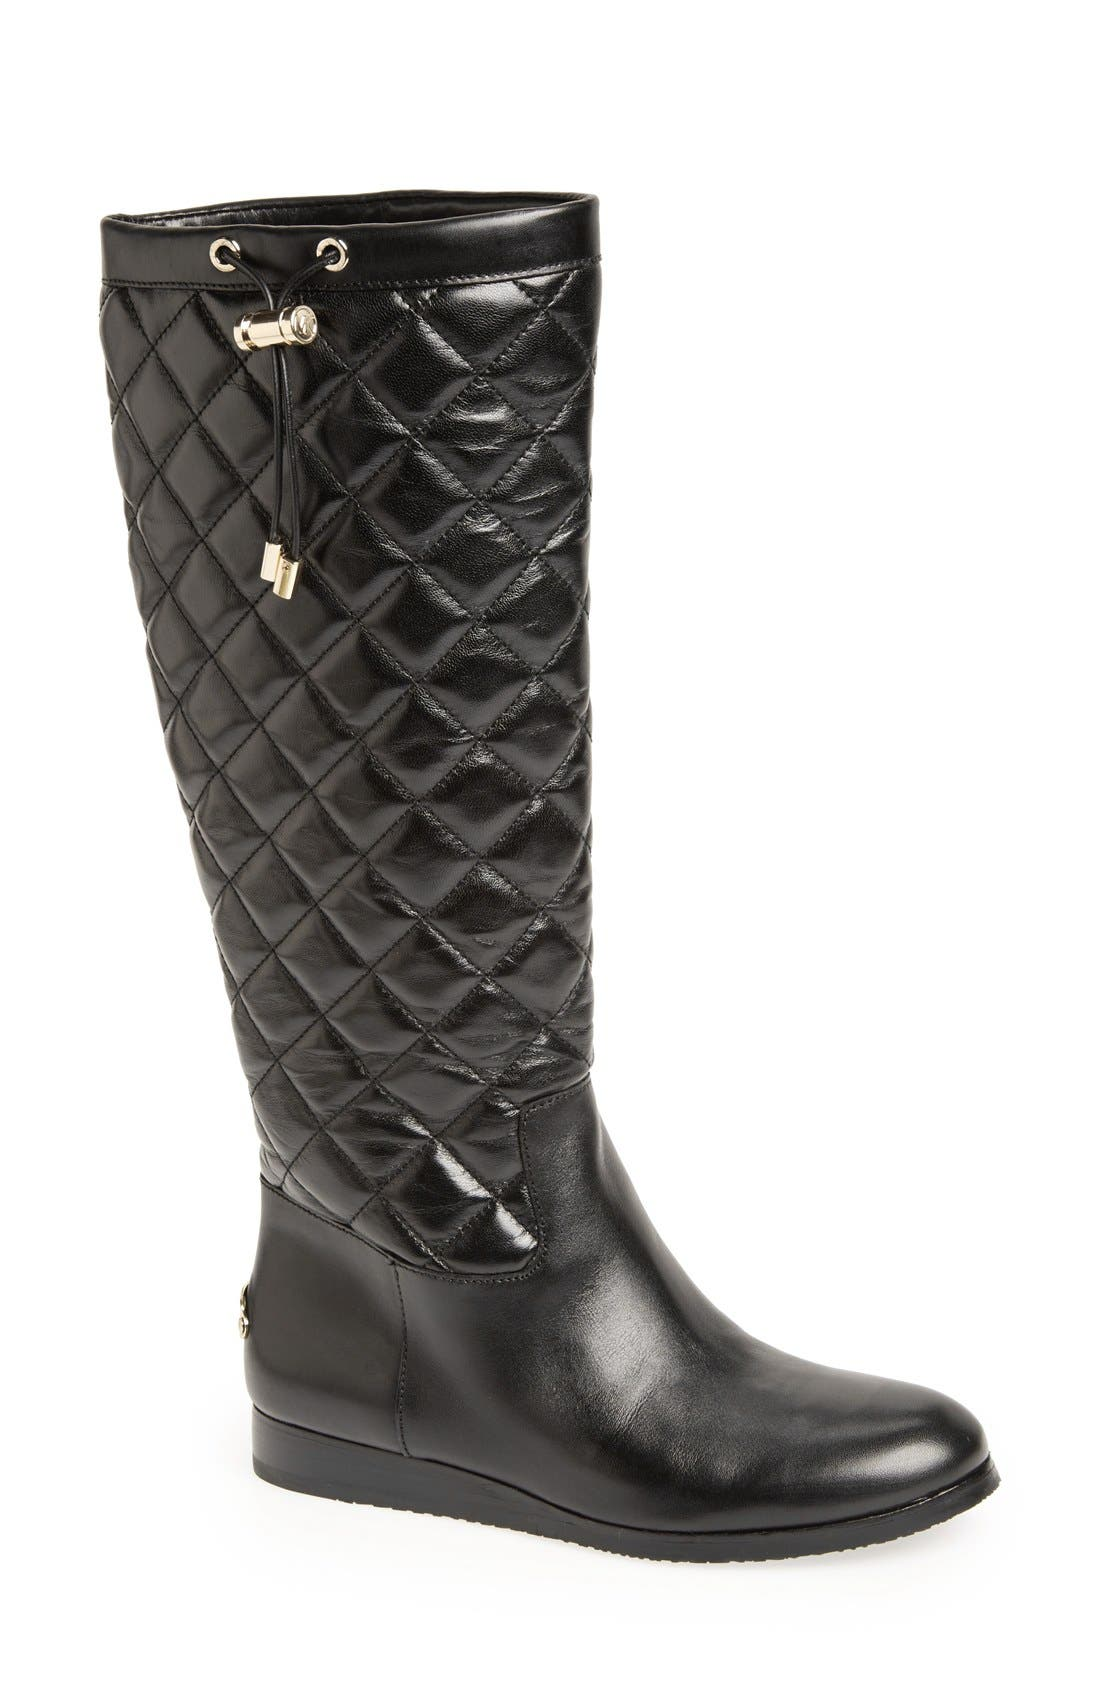 Main Image - MICHAEL Michael Kors 'Lizzie' Quilted Leather Knee High Boot (Women)